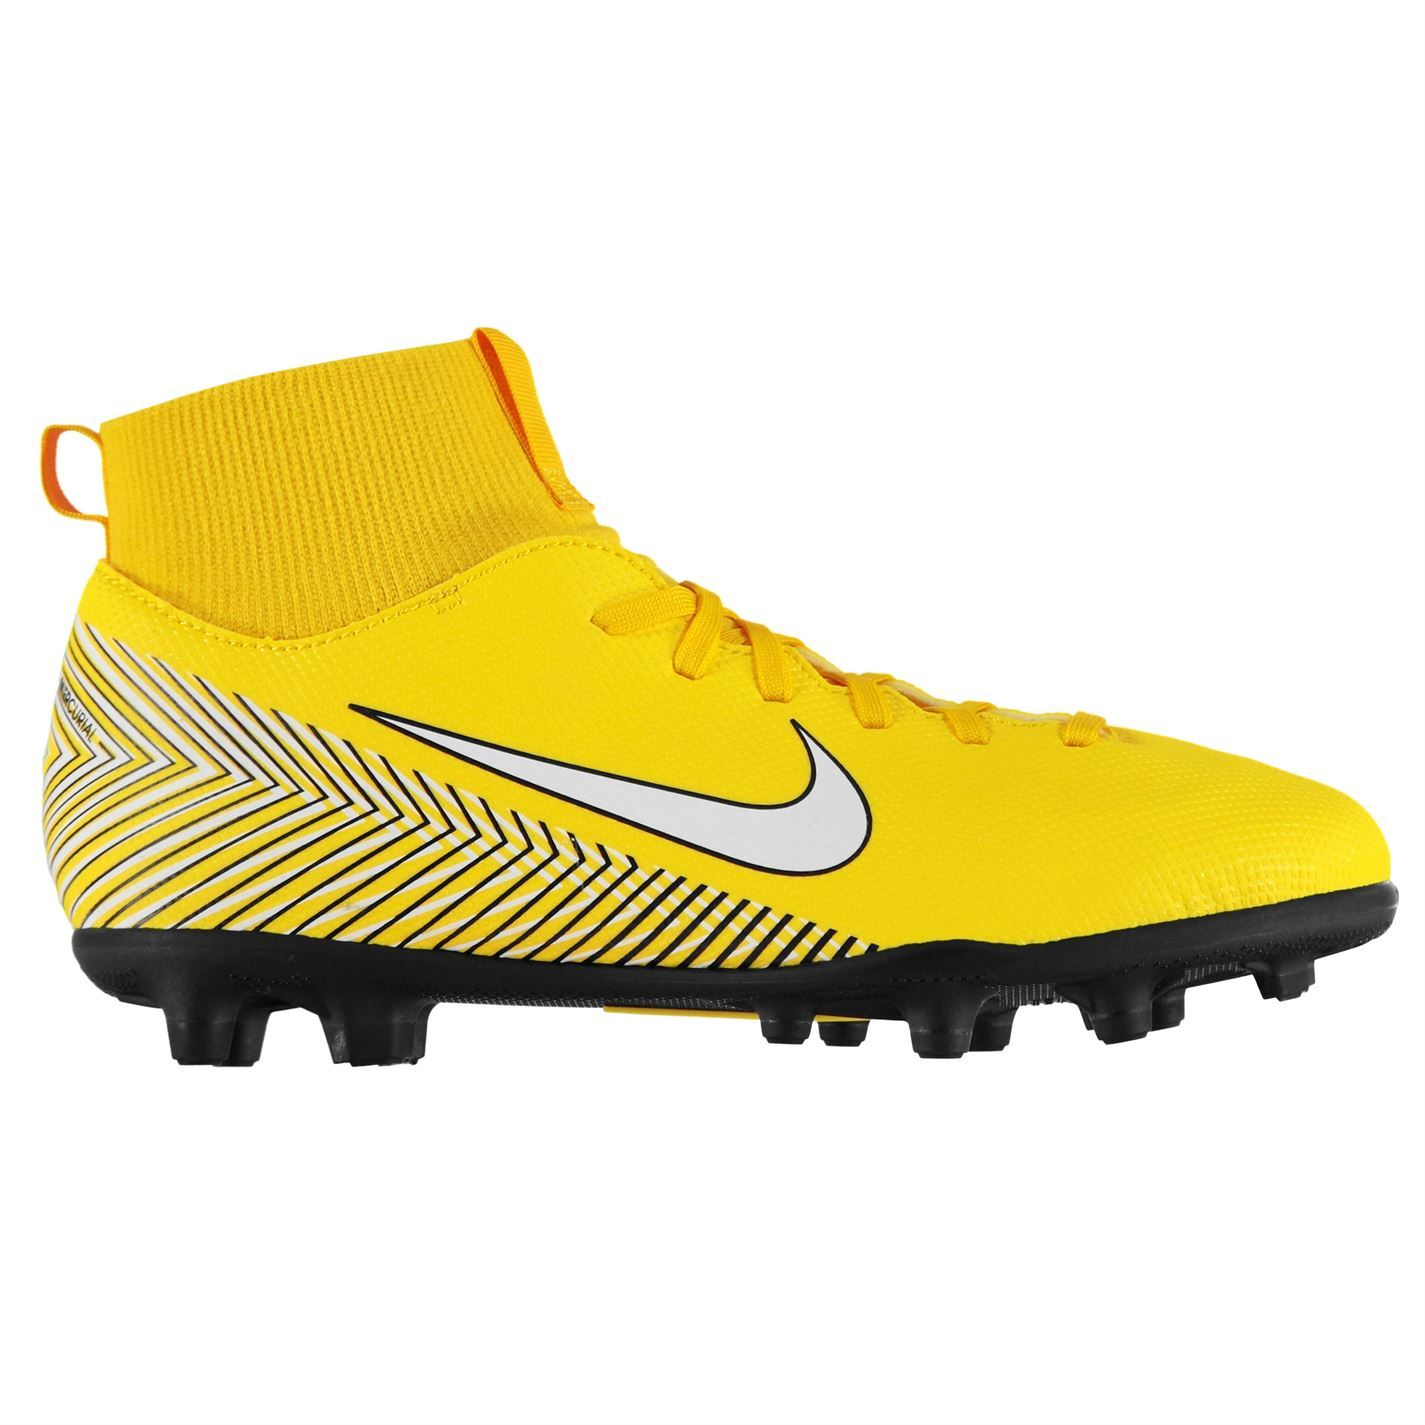 premium selection b889c b359e Details about Nike Mercurial Superfly Club Neymar Football Boots Juniors  Yellow Soccer Cleats